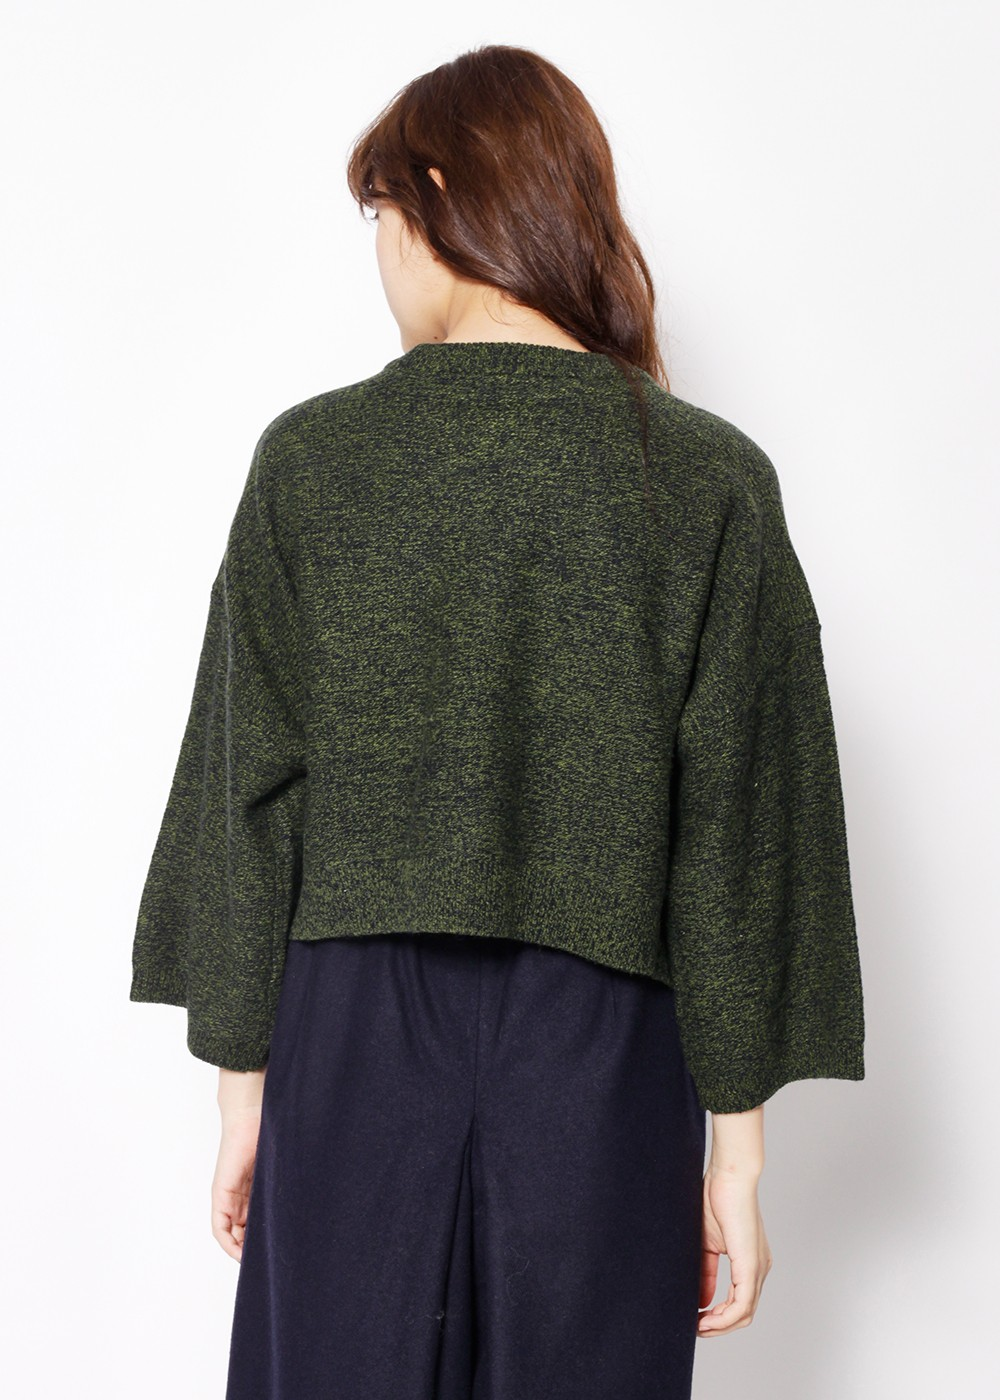 WIDEスリーブニット|GREENMIX|ニット・セーター|URBAN RESEARCH warehouse Tops&Outer|最大80%OFF